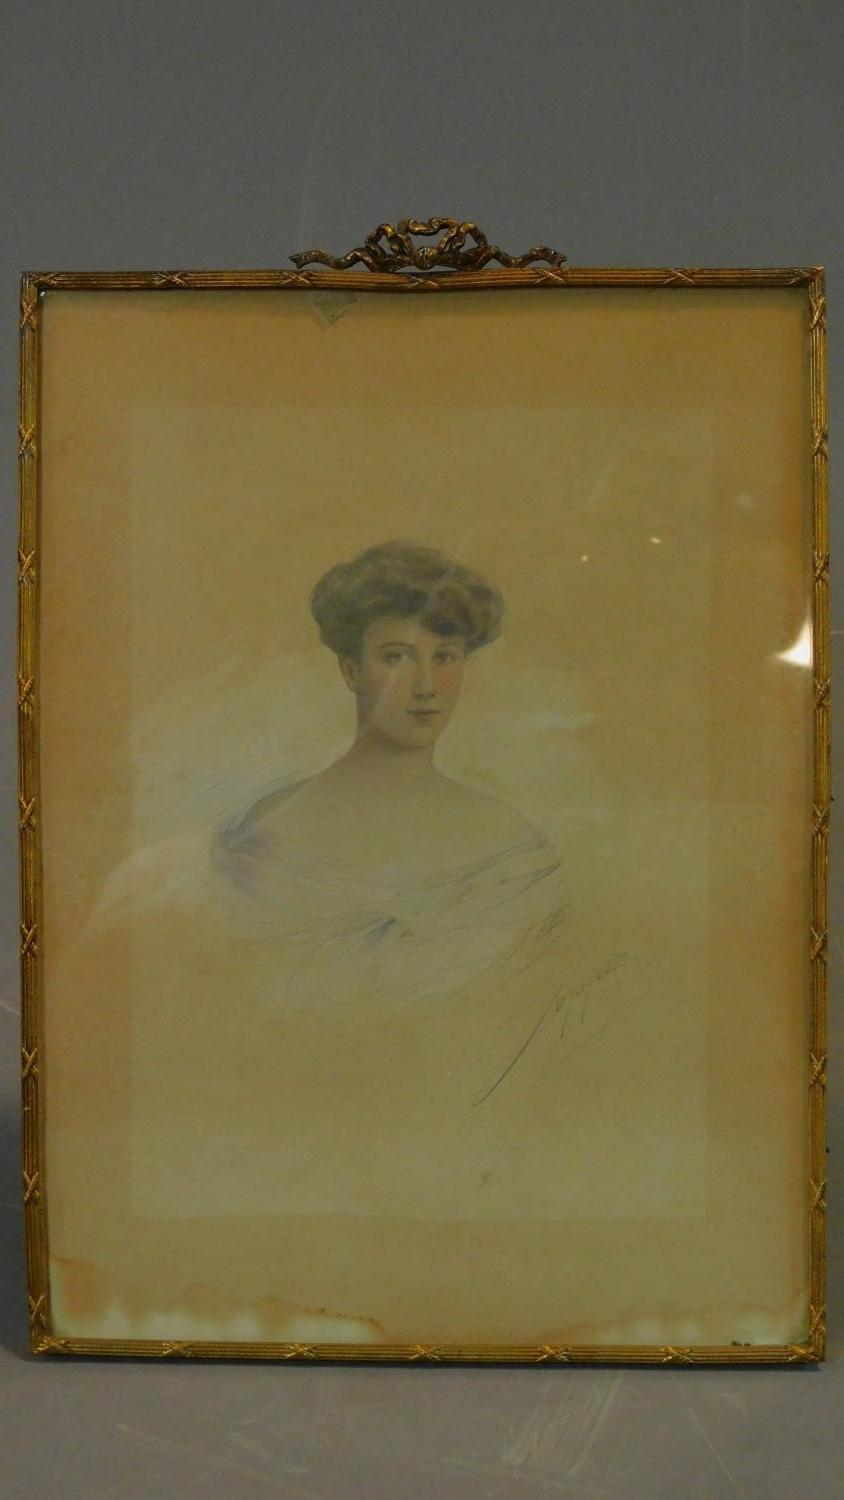 An early 20th century pencil and watercolour portrait in gilt metal easel frame. 30x21cm